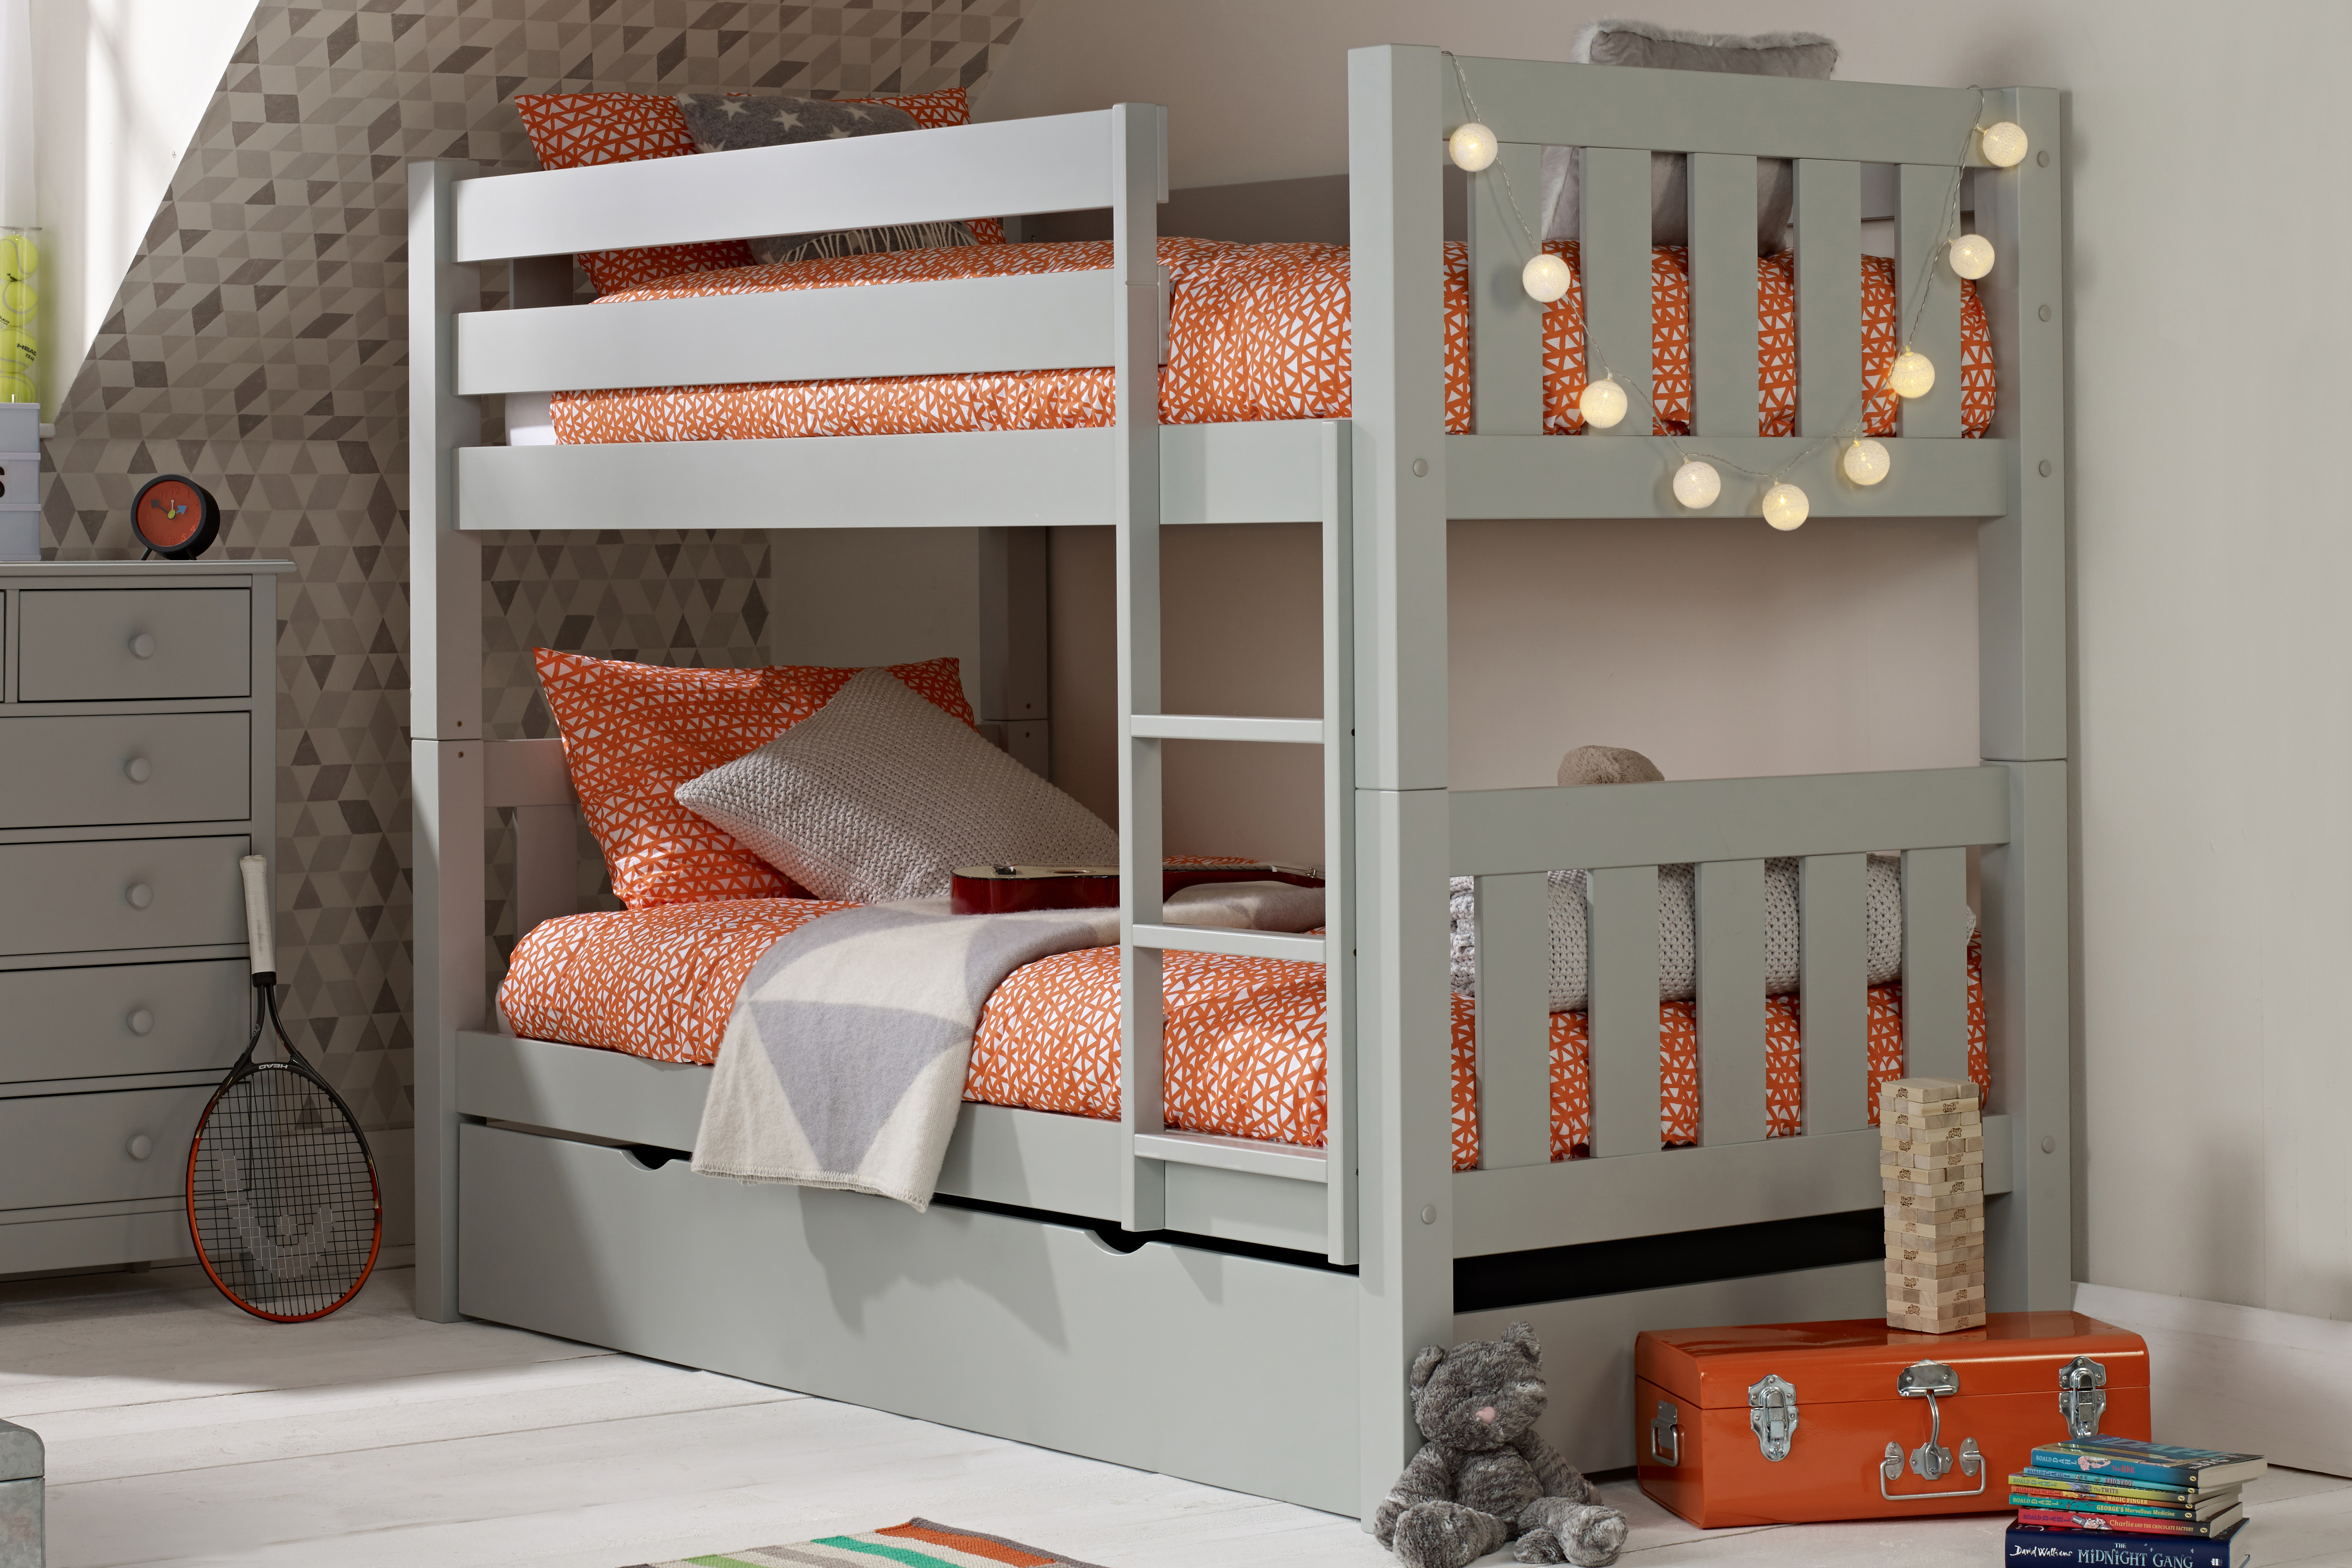 5 Stylish Bunk Bed Ideas For Maximising Space In Style Mum Thats Me